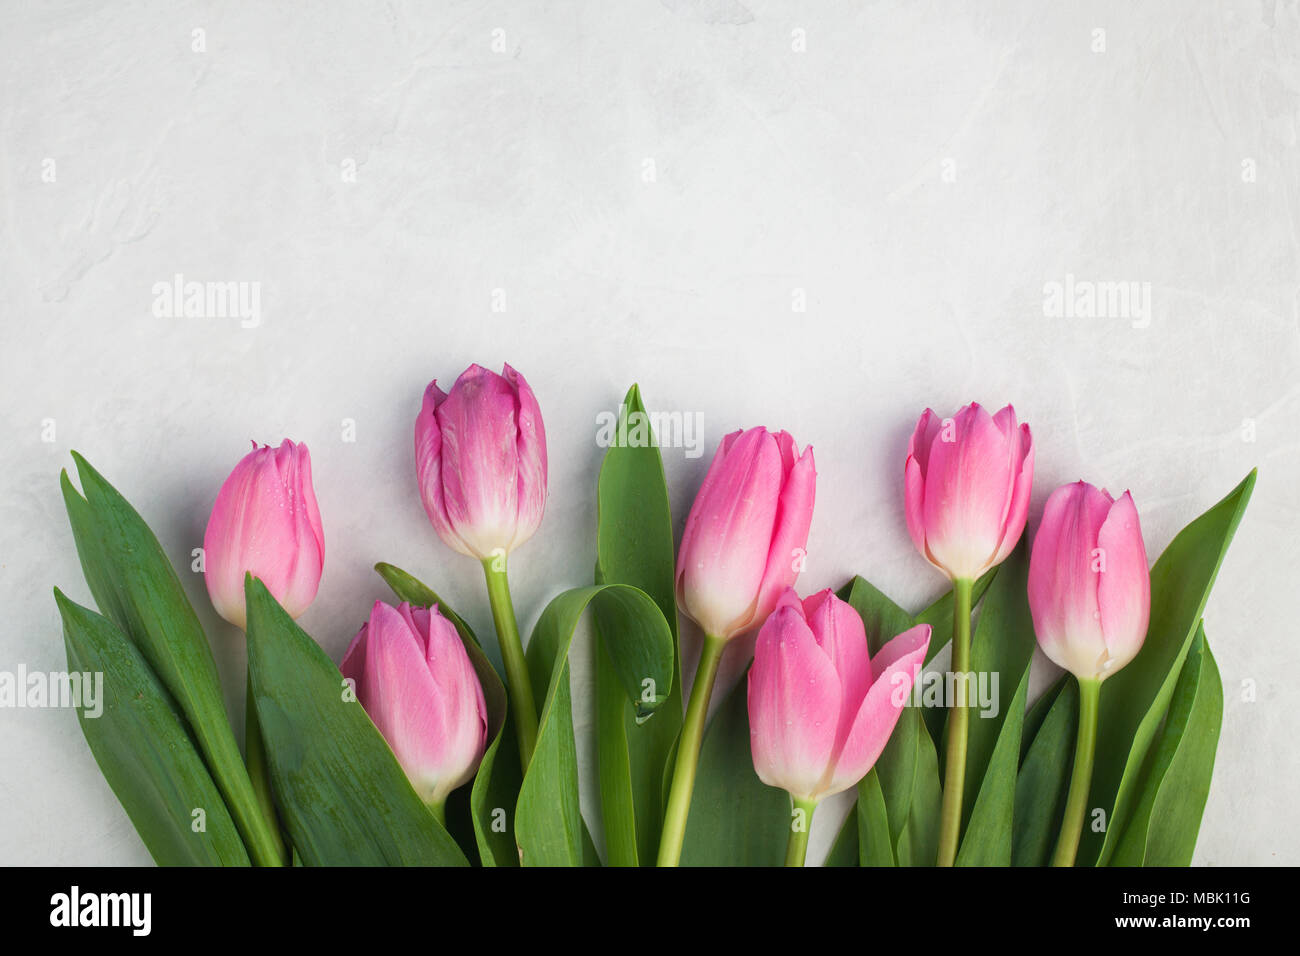 Spring flowers pink tulip on white background flat lay top view spring flowers pink tulip on white background flat lay top view with copy space mightylinksfo